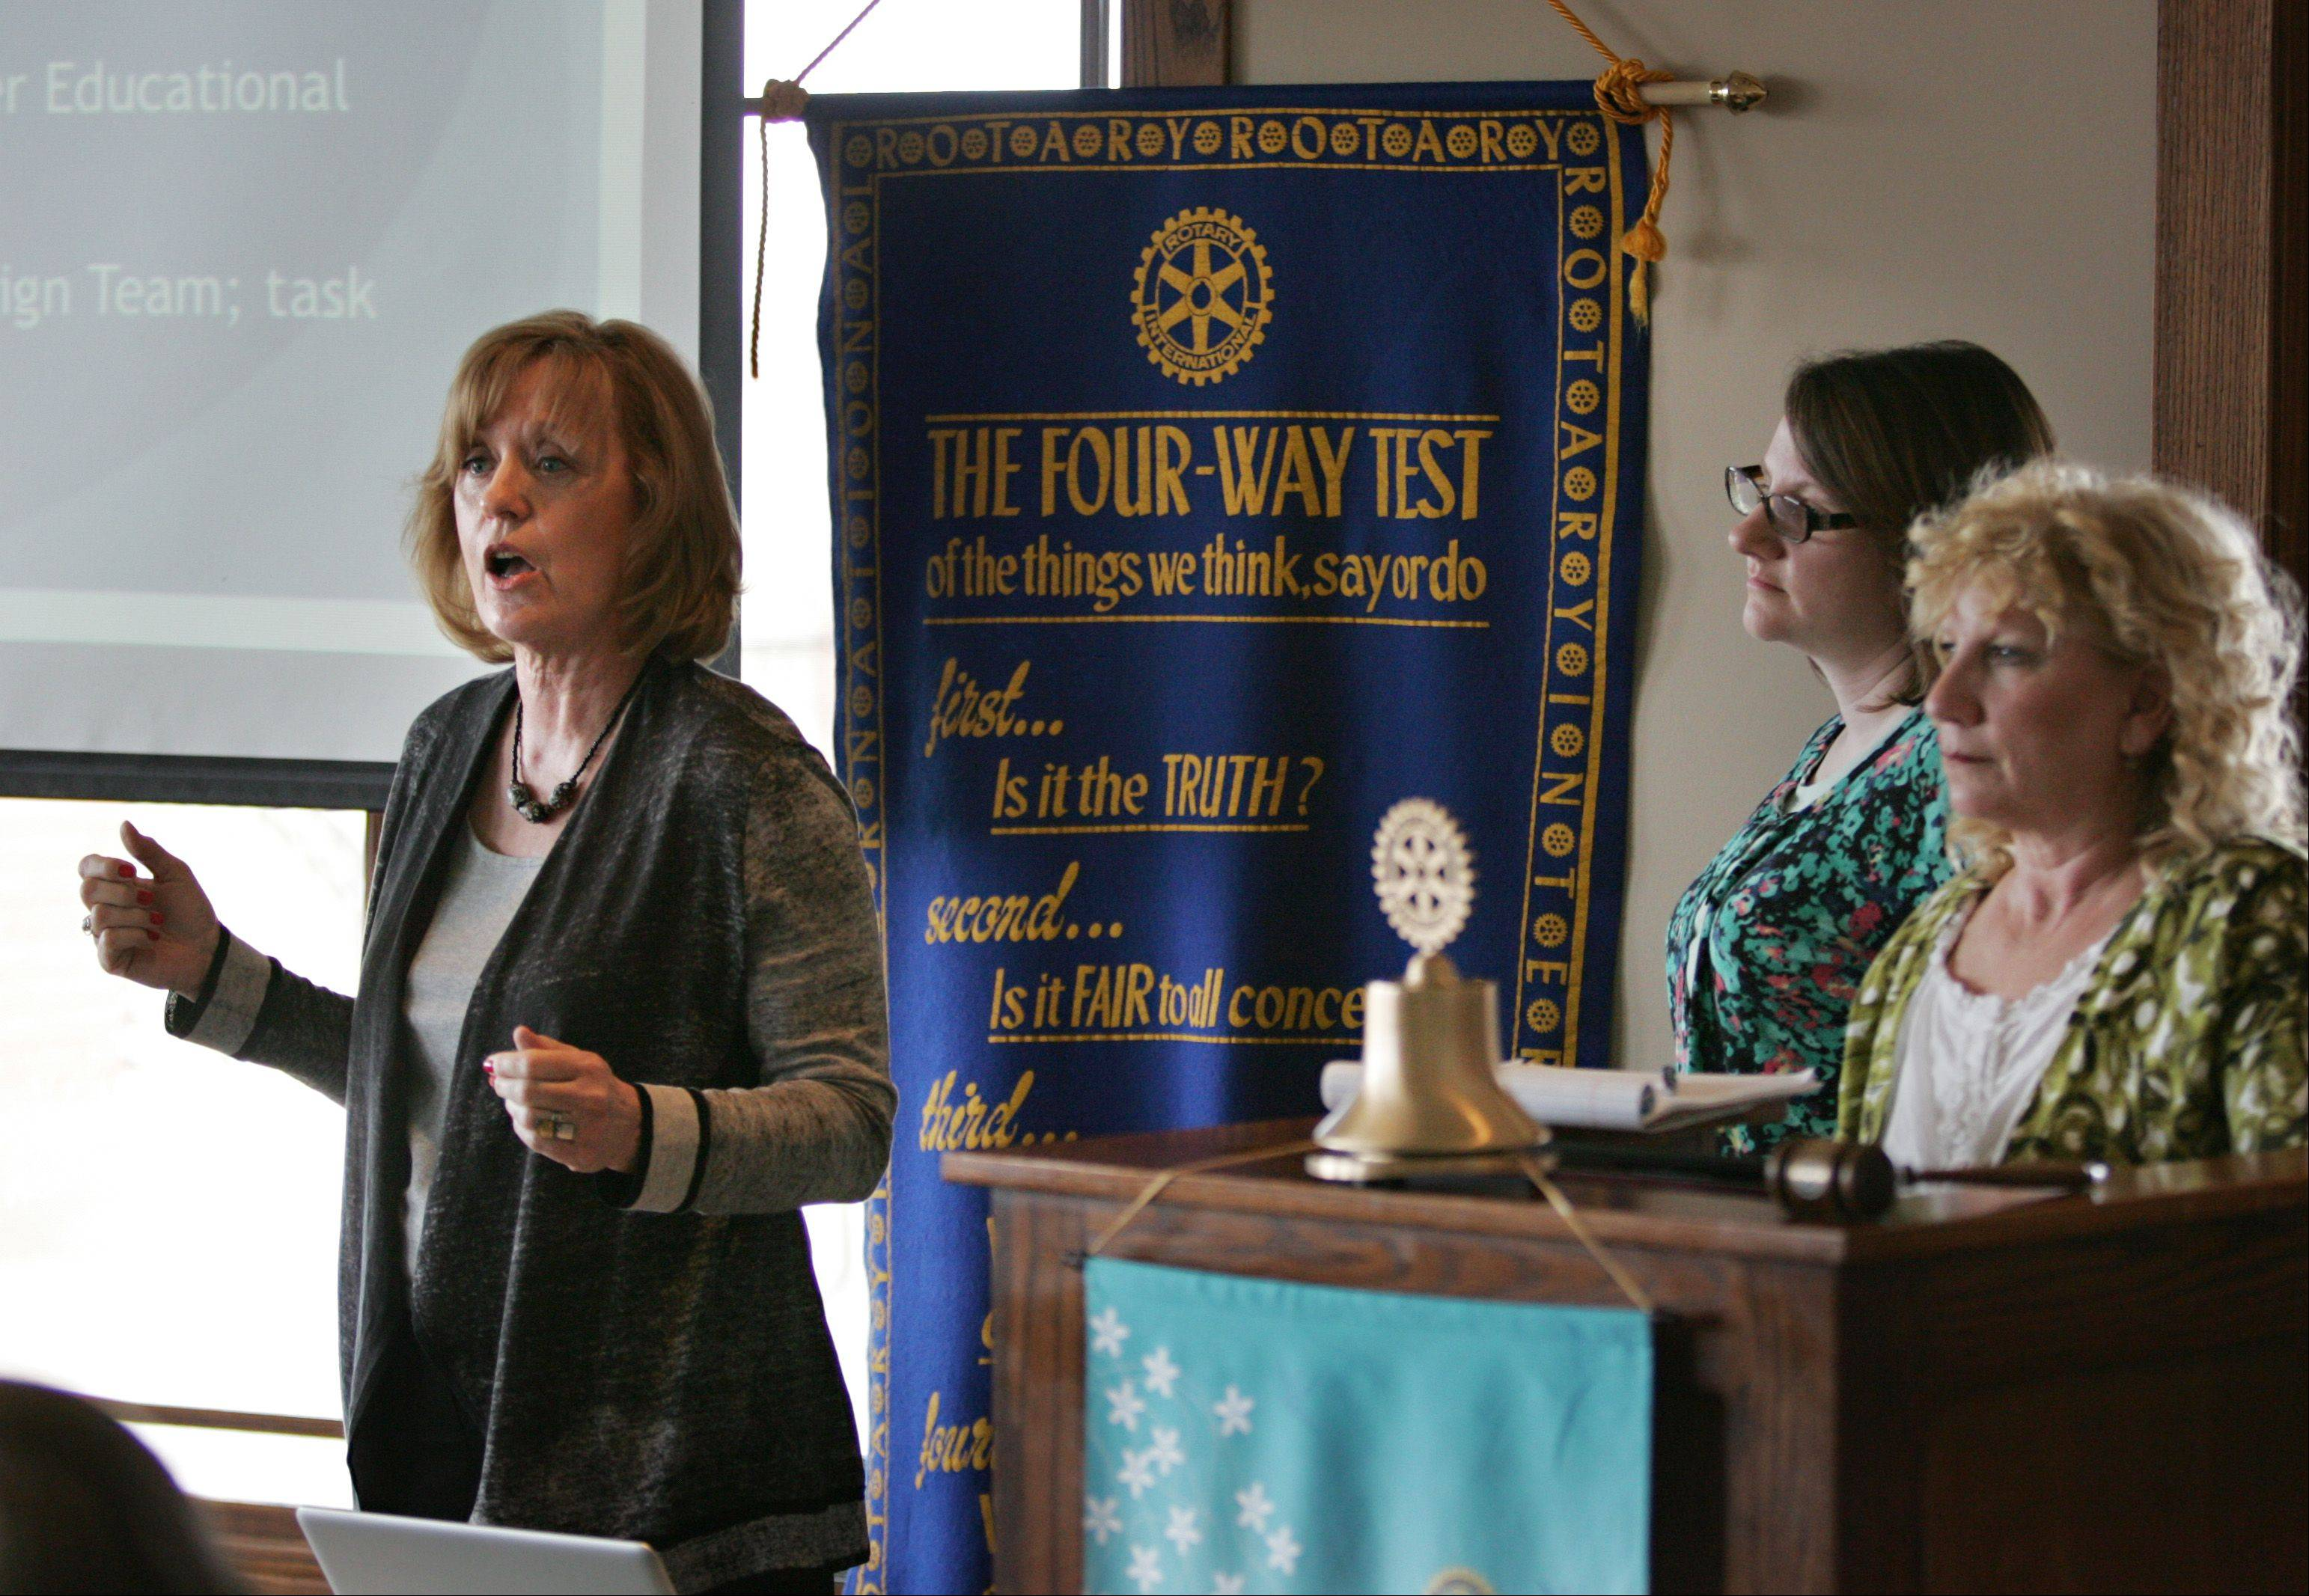 Karen Schock of the Elgin Charter School Initiative talks to members of the Elgin Noon Rotary Club in April about the group�s vision for a charter school serving the Elgin area. Also pictured are Kari White, center, and Krissy Palermo, right.